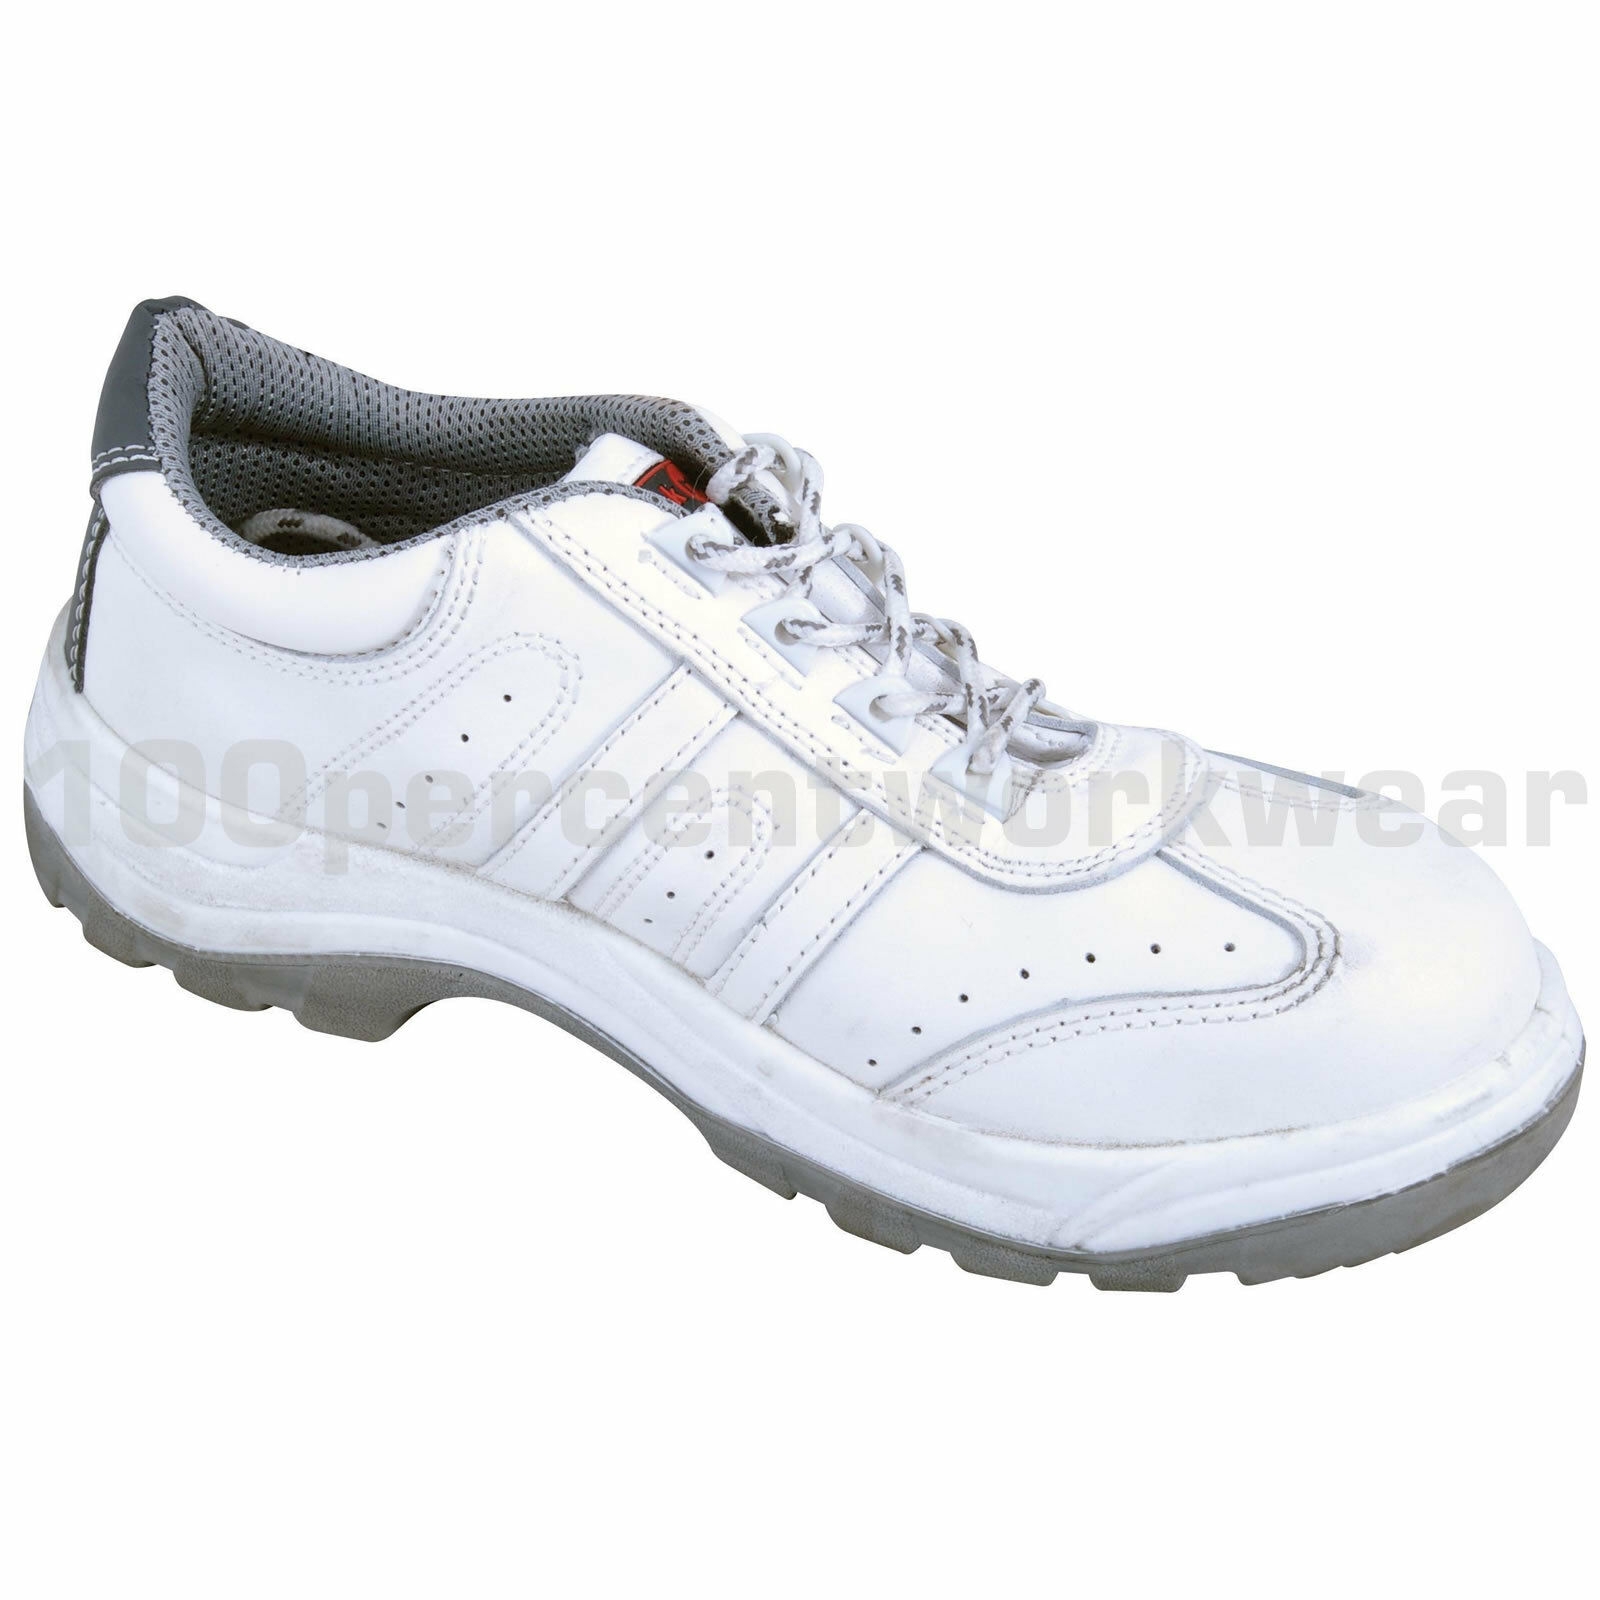 Blackrock SF30 Work Painters Decorators White Safety Trainers shoes Decorating